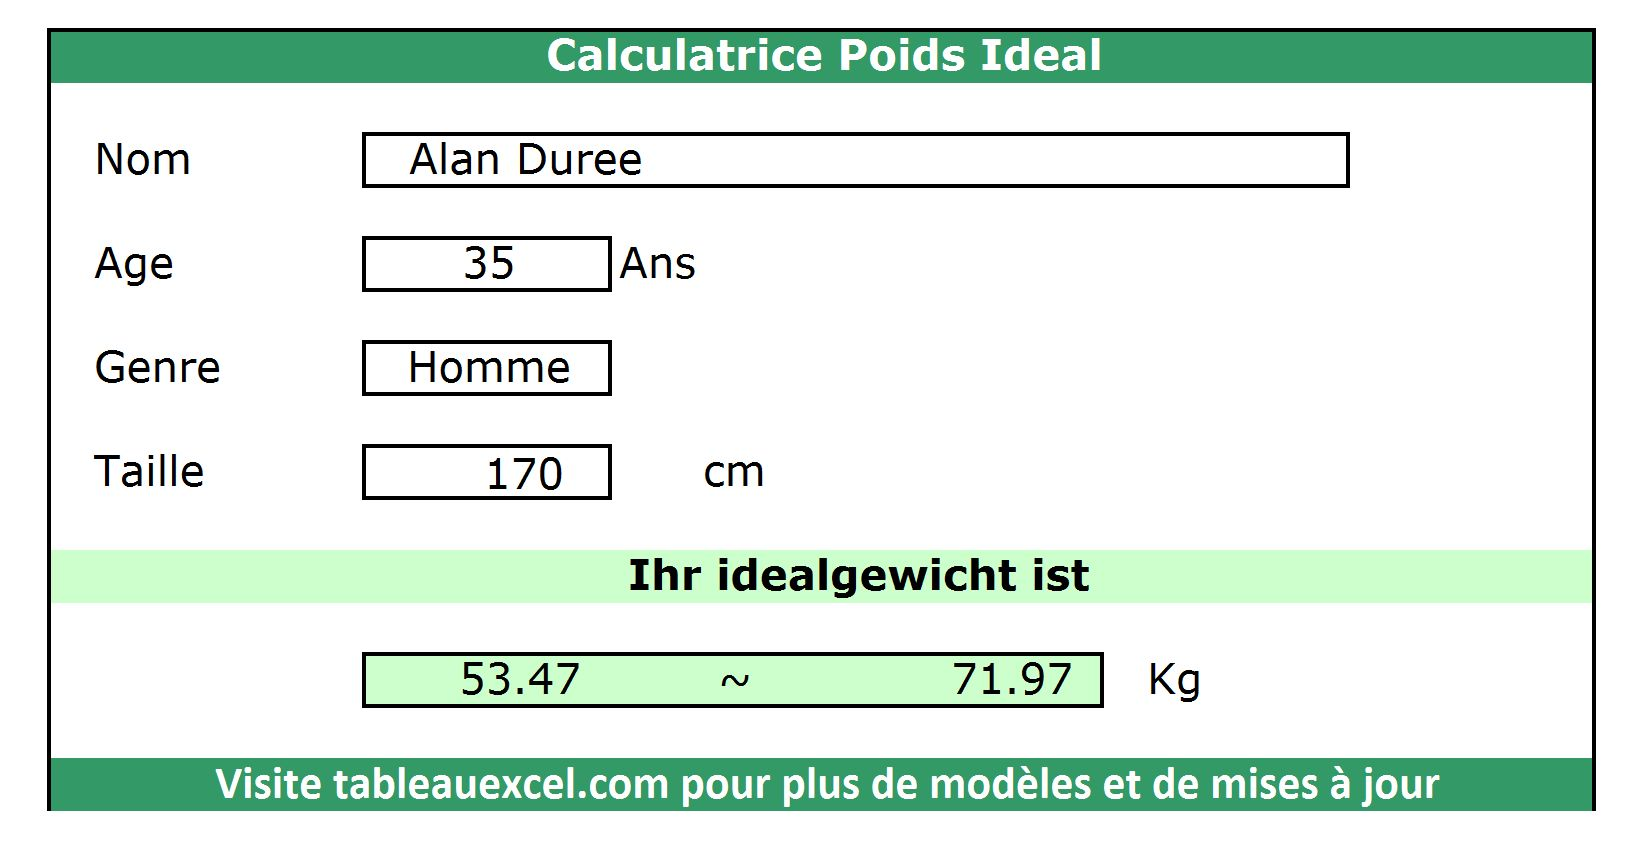 Calculatrice-Poids-Ideal